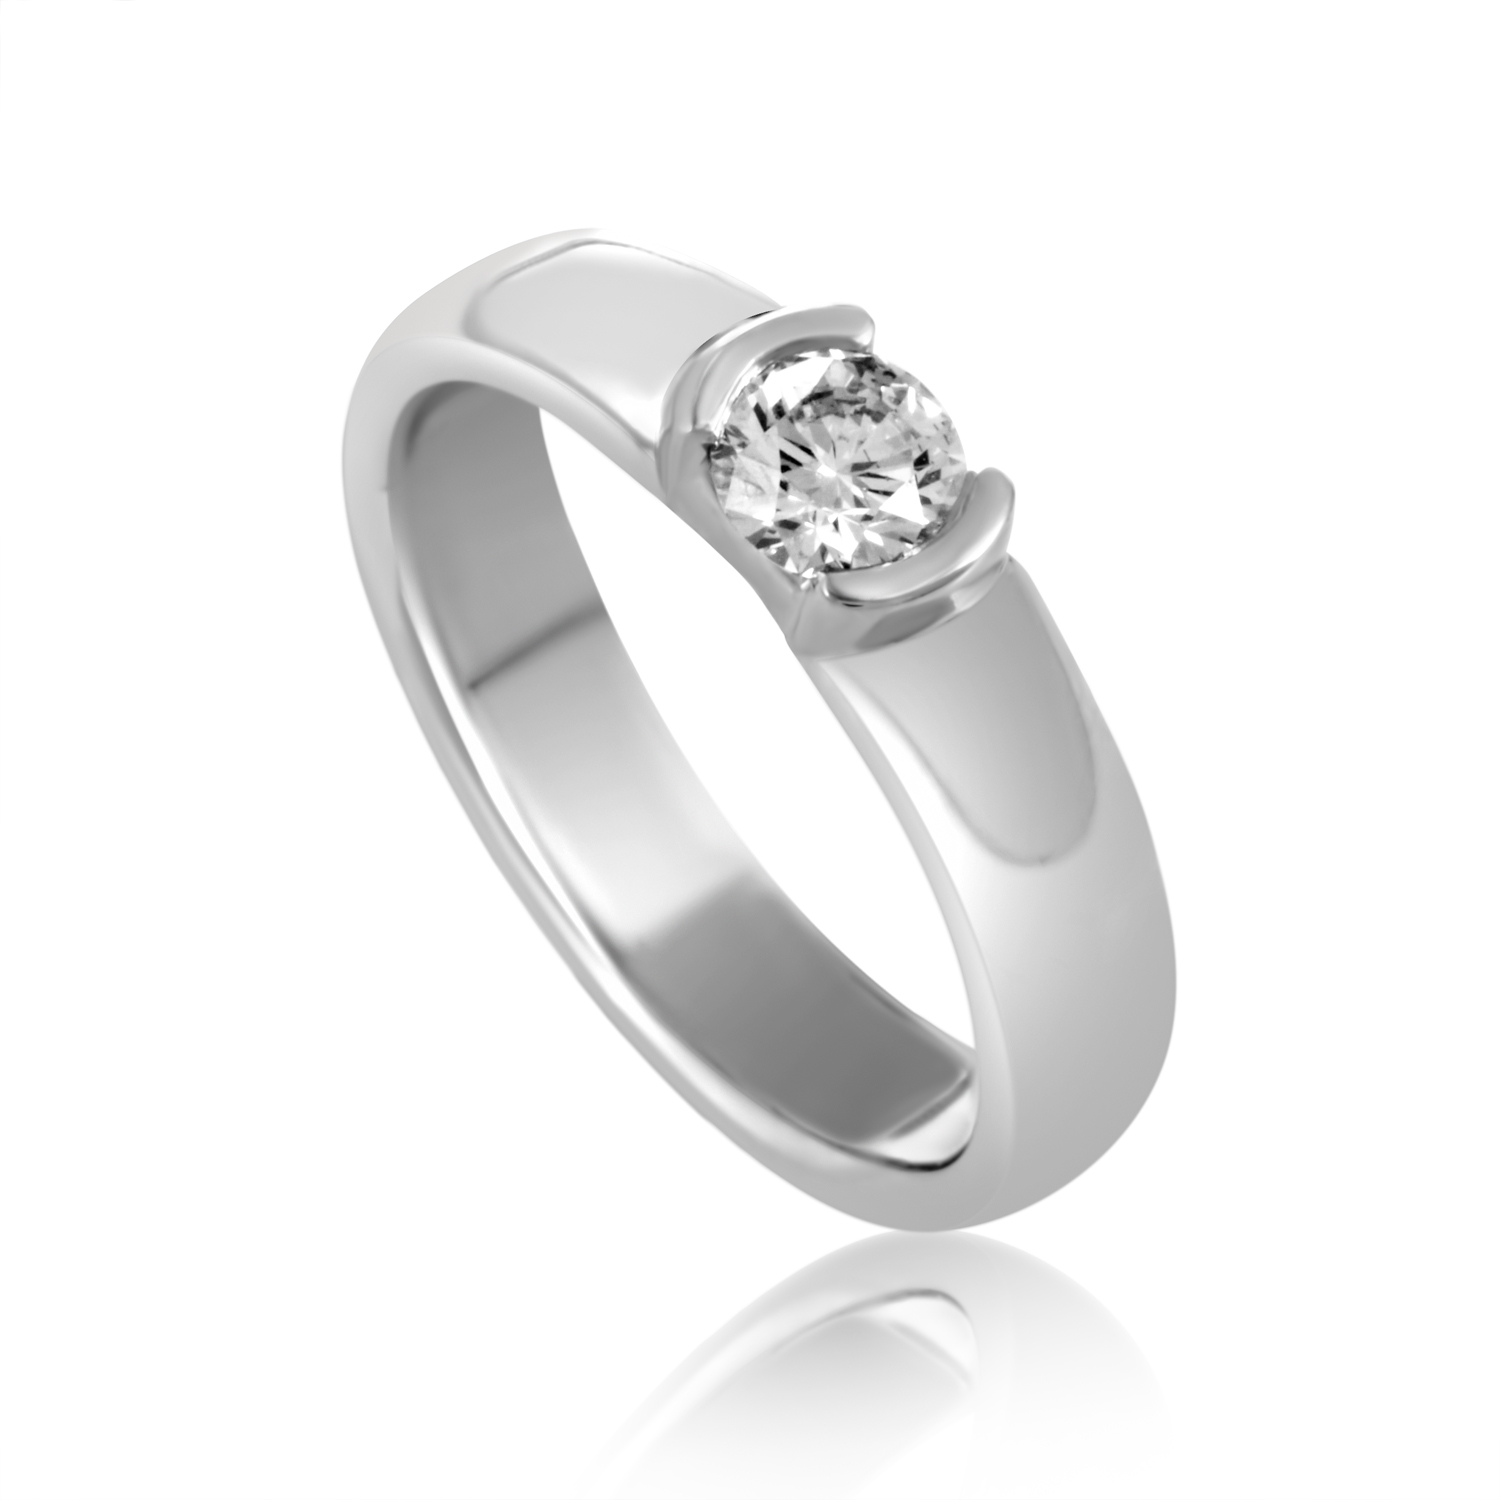 Solitaire Tiffany Bands: Tiffany & Co. Etoile Platinum Diamond Solitaire Engagement